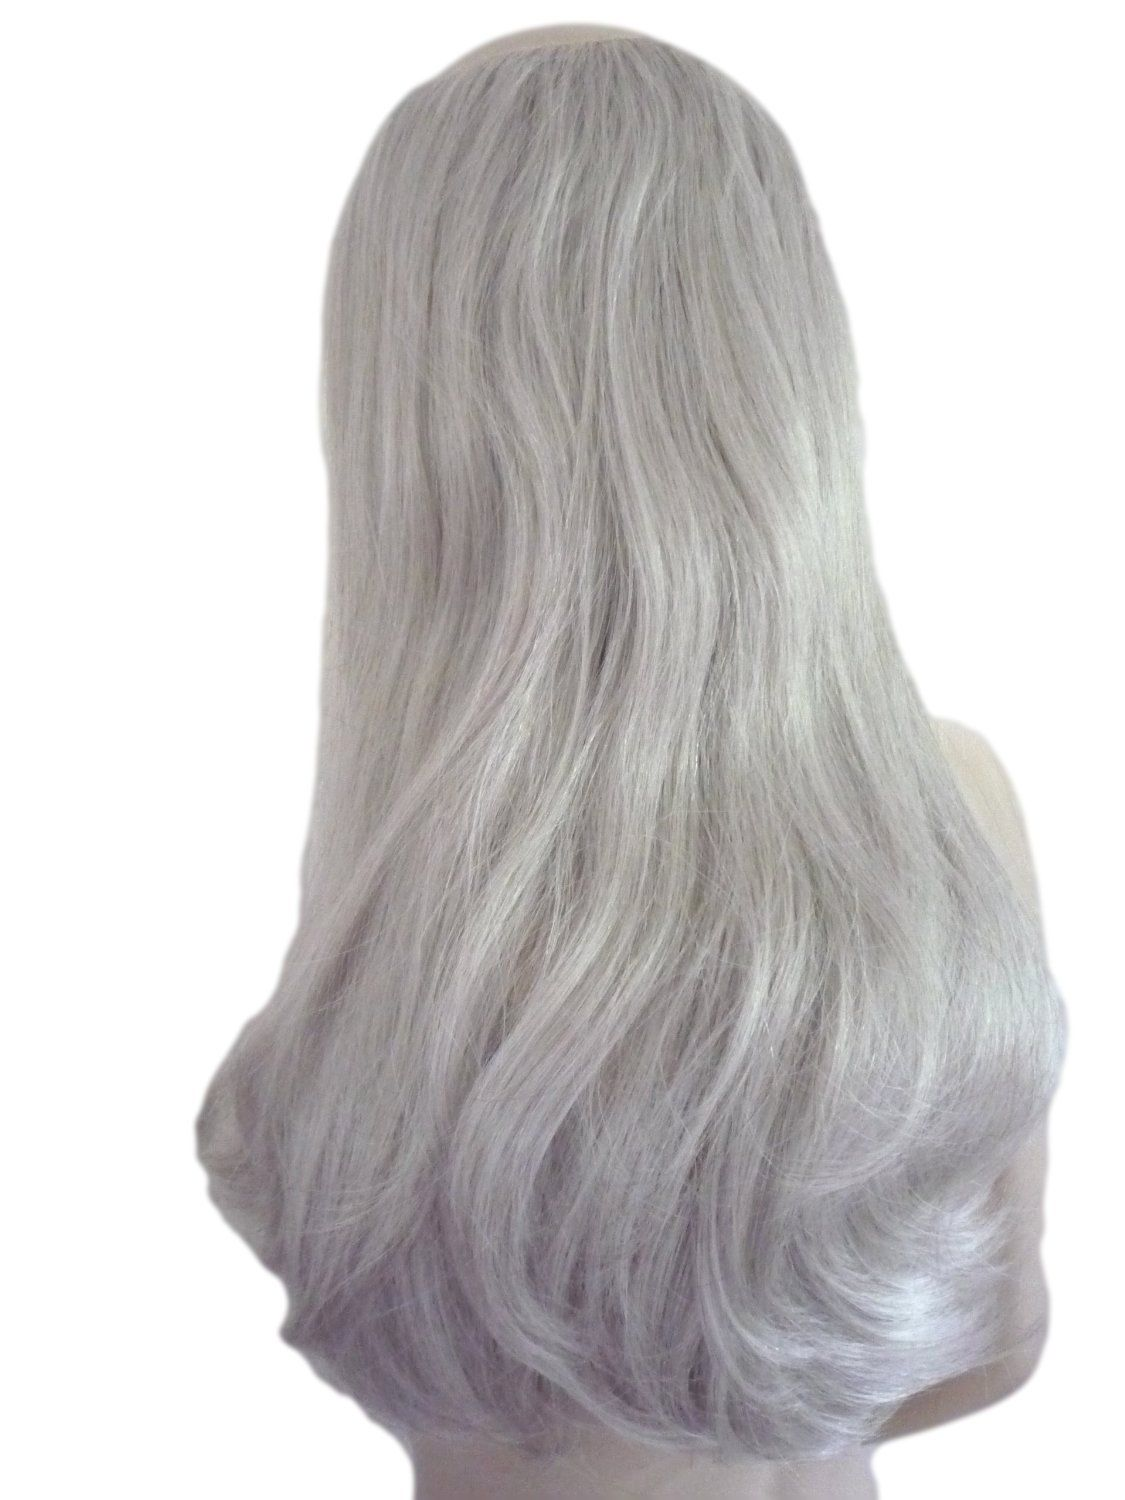 Gray Wigs Natural Hair Line Lace Frontal Wigs Coffee For Grey Hair Granny Grey Hair Light Pink Long Wig Ash Grey Hair Men 100 Human Hair Weave